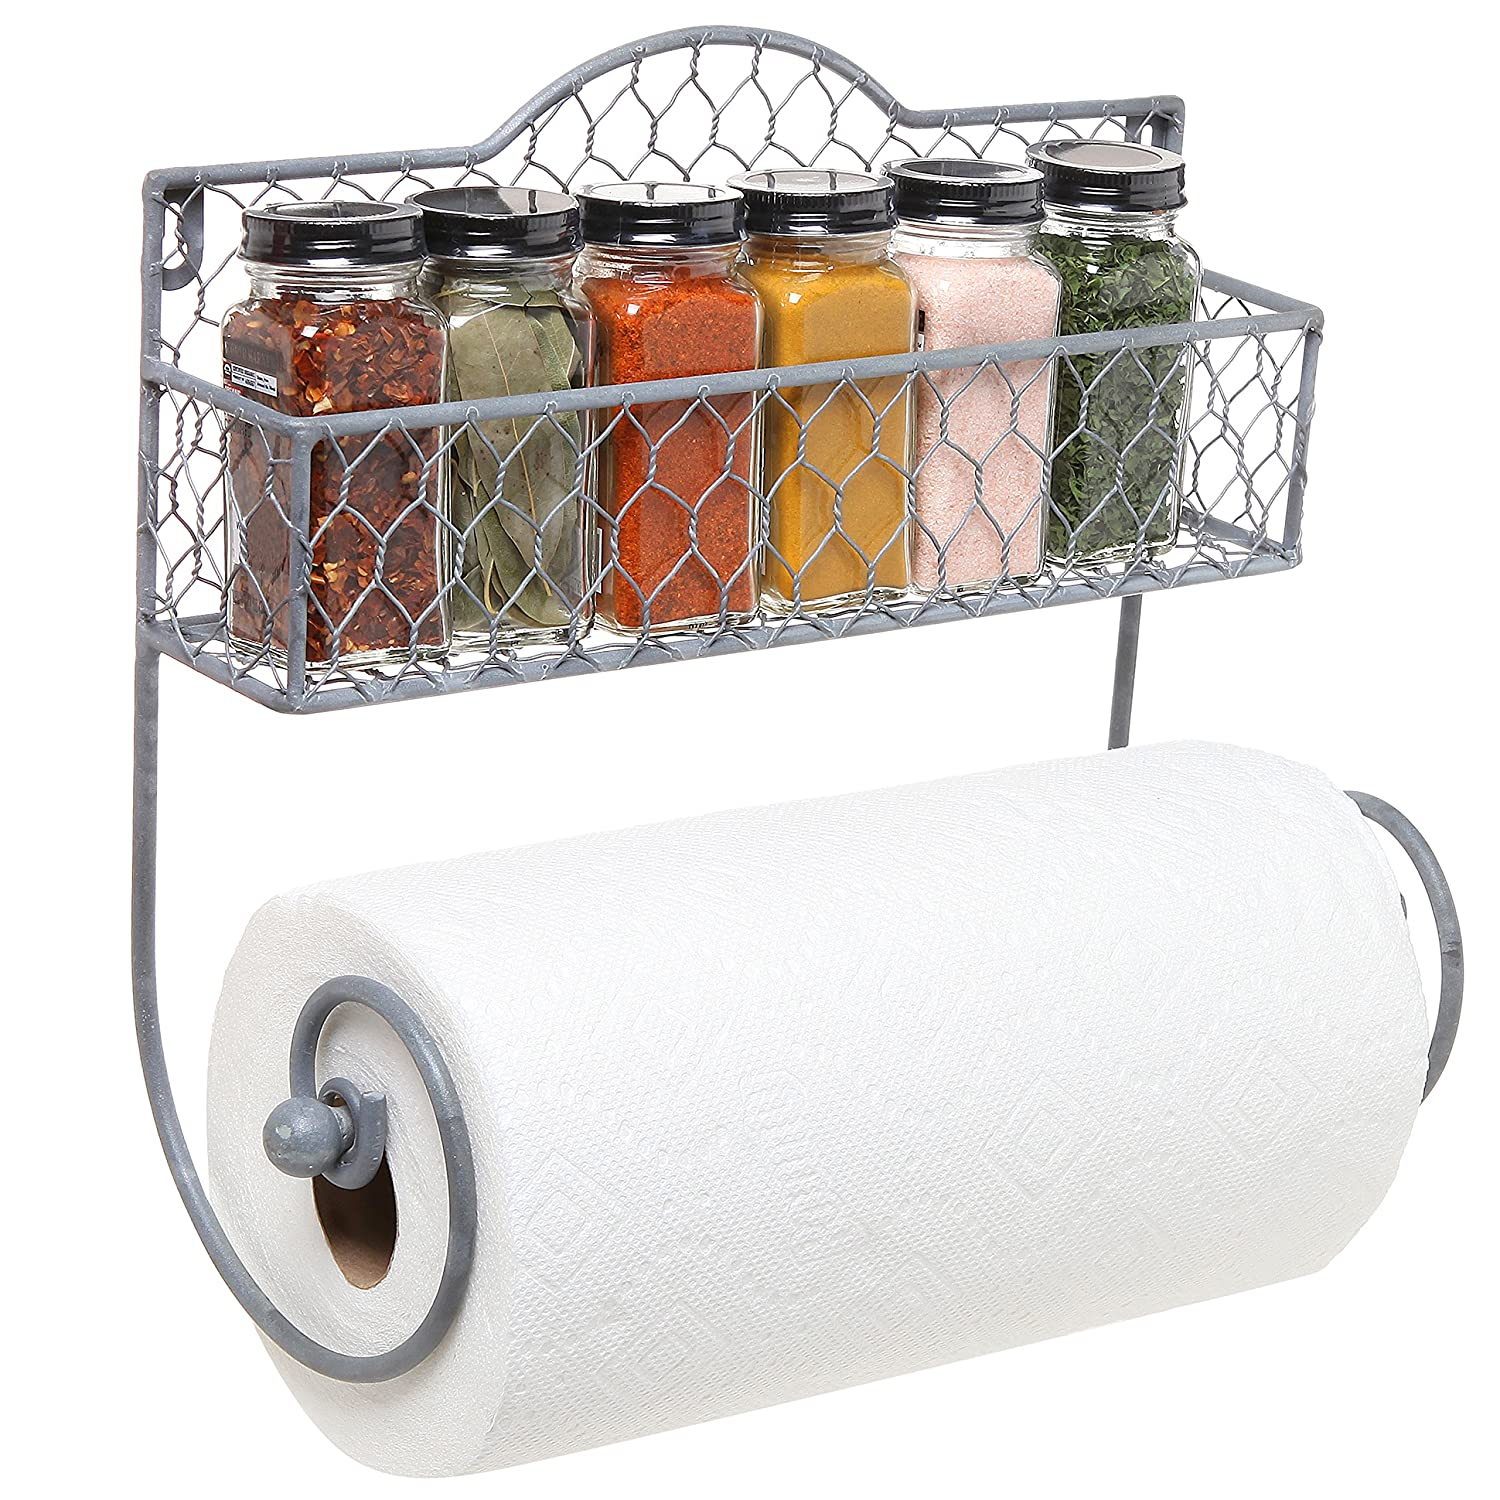 Amazon.com: Wall Mounted Rustic Gray Metal Kitchen Spice Rack U0026 Paper Towel  Holder / Bathroom Basket U0026 Towel Bar: Kitchen U0026 Dining